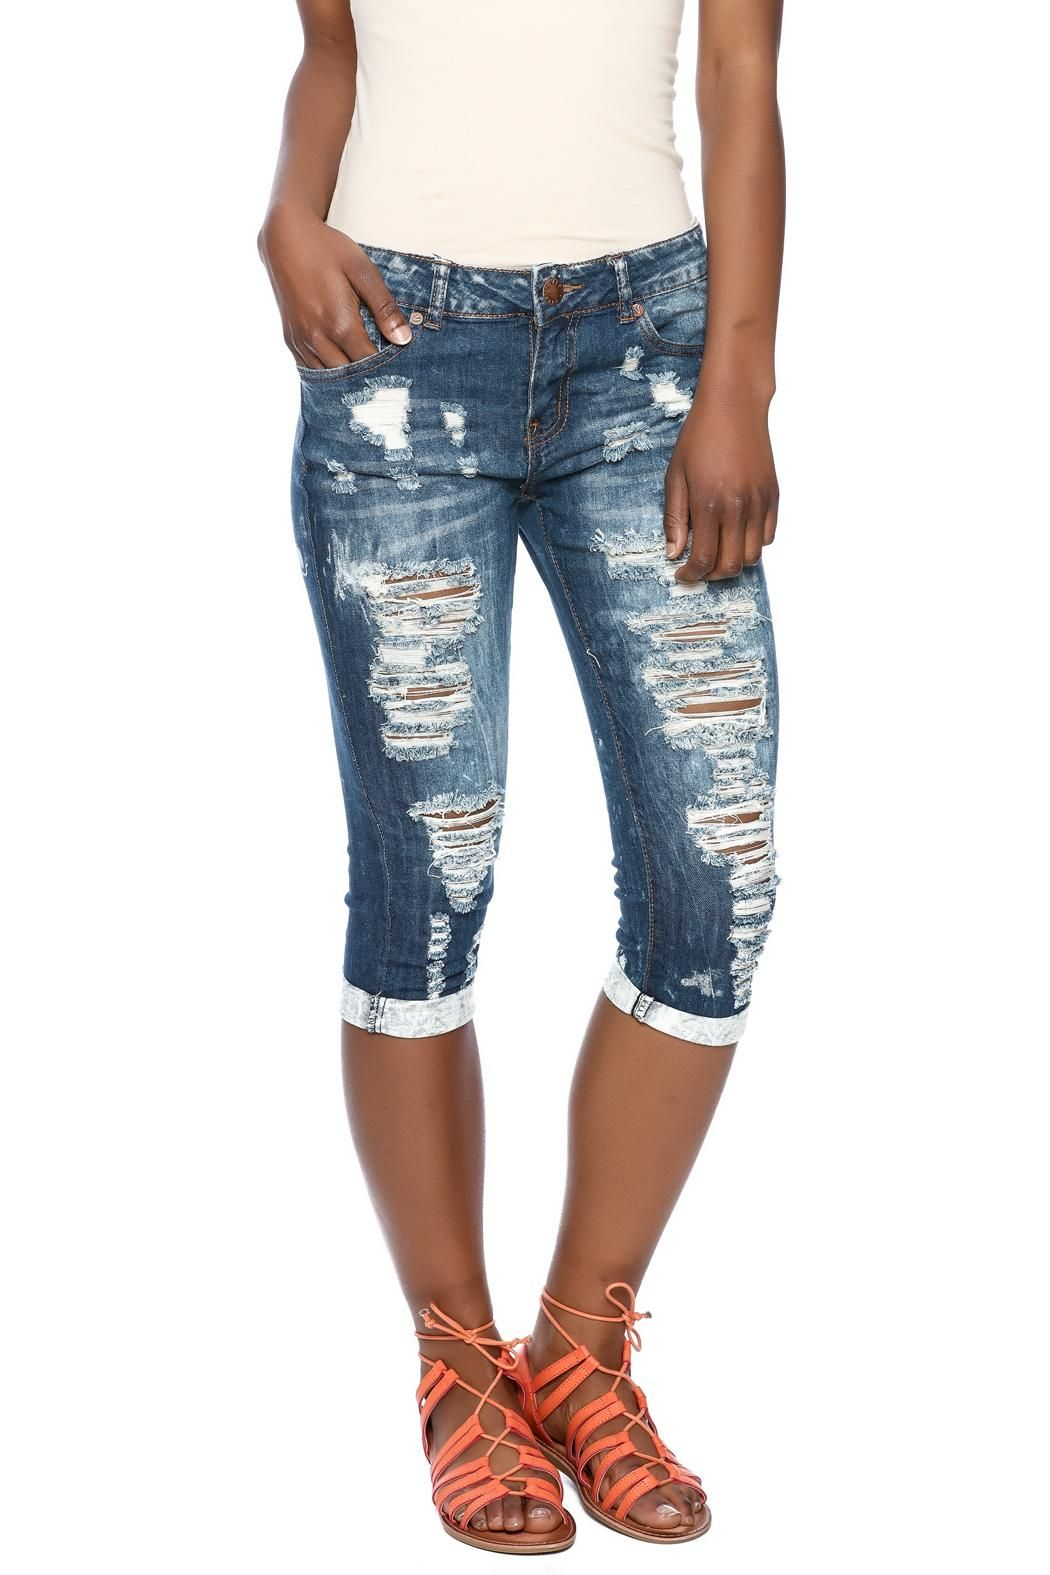 Ripped Jean Capris | Ripped jeans, Products and Cuffs